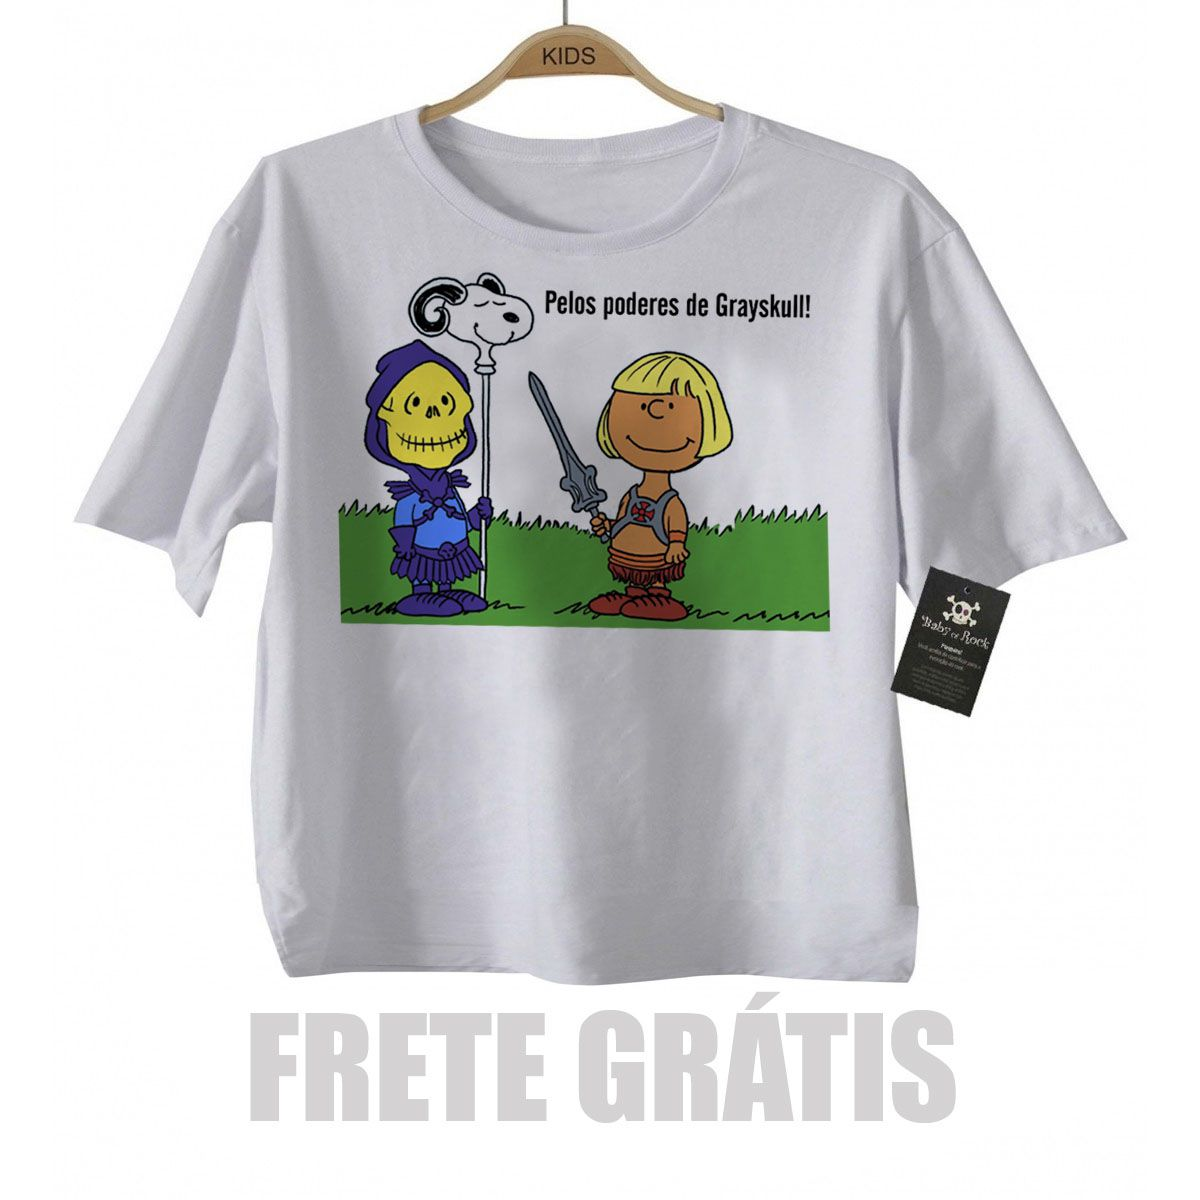 Camiseta Infantil  He man Snoopy -  White - Baby Monster S/A